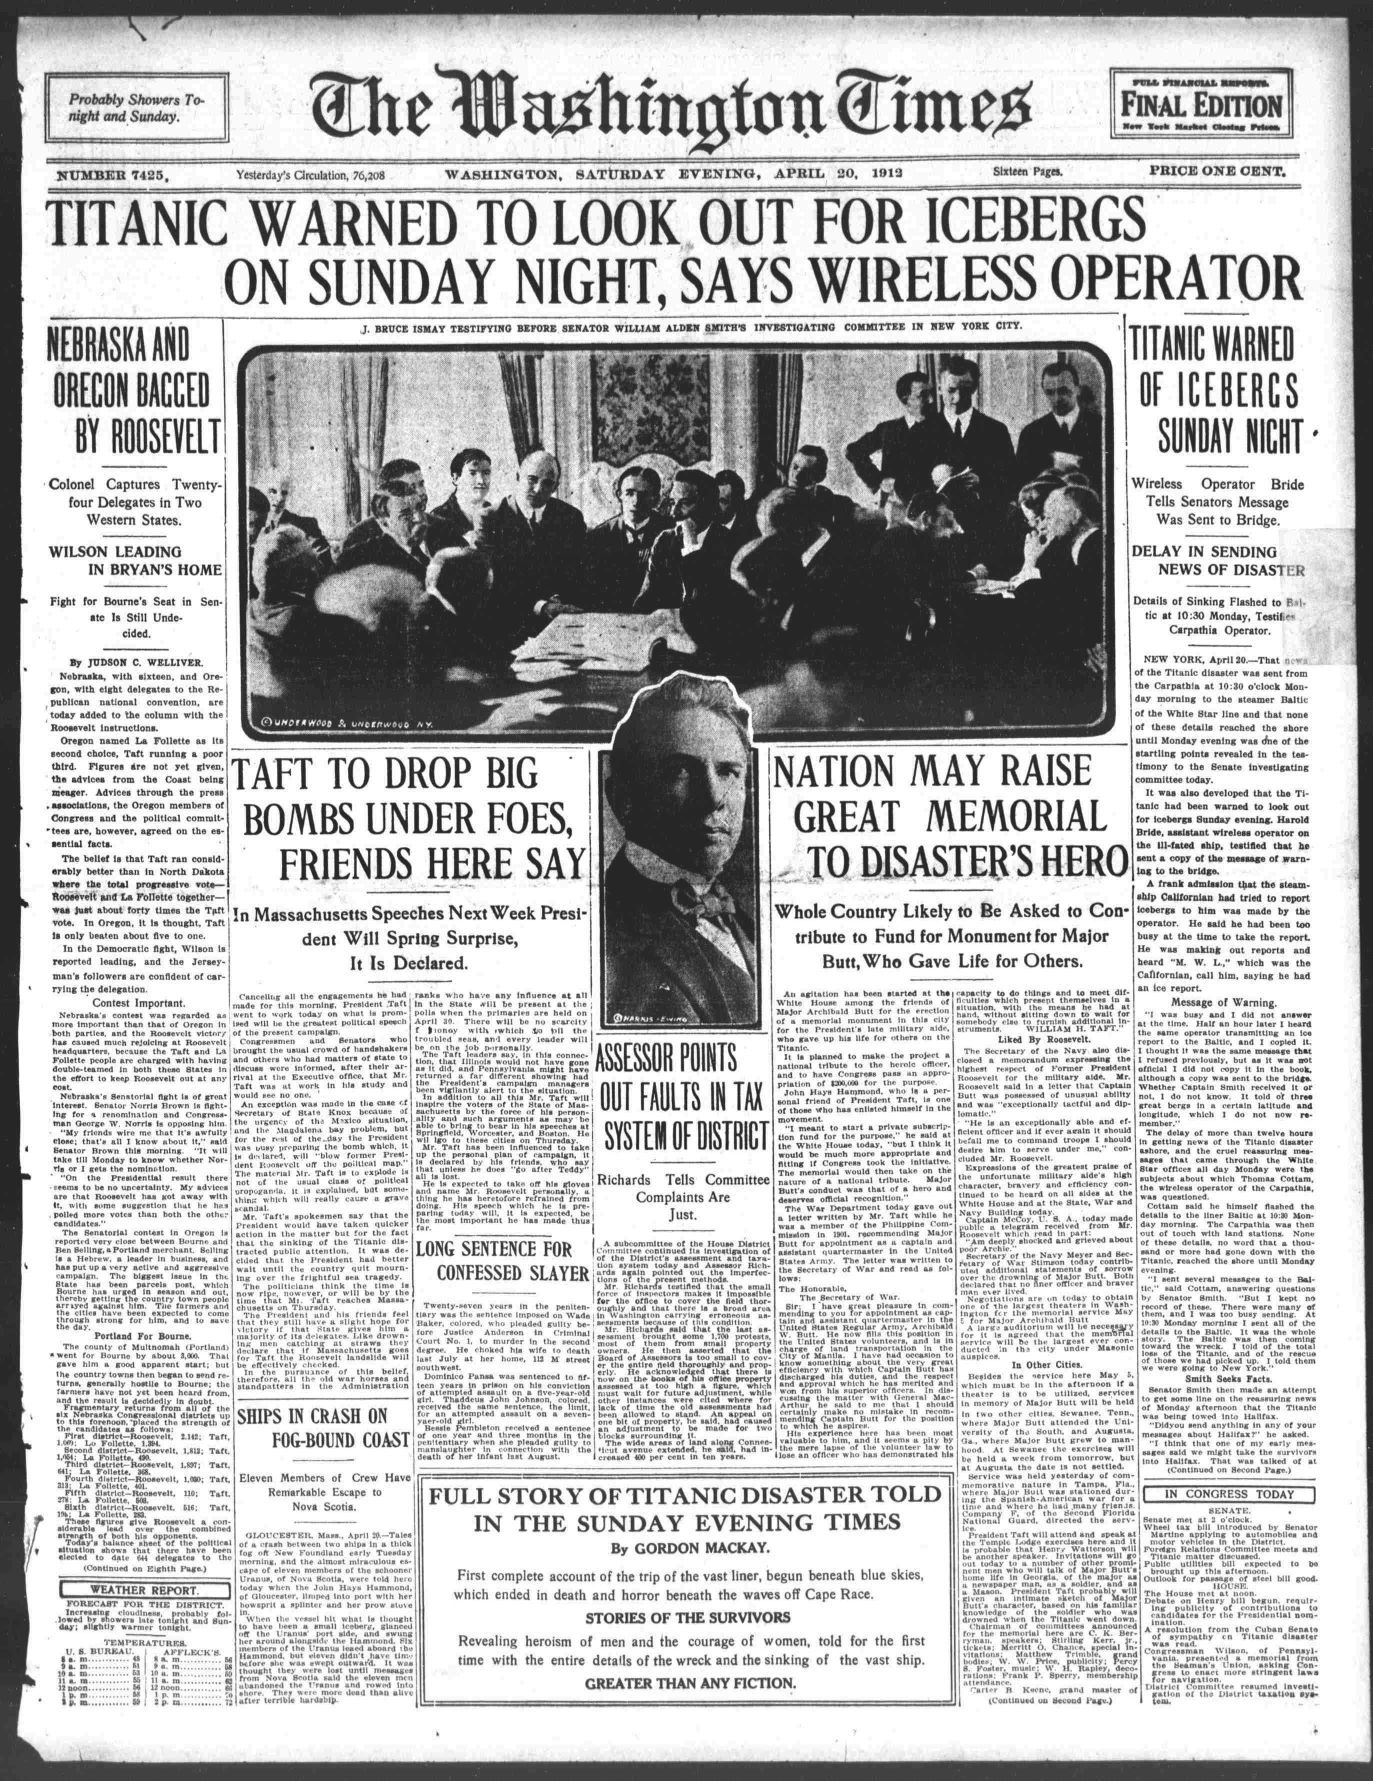 Titanic Newspaper Front Page 1912-04-20 The Washington Times, April 20, 1912, FINAL EDITION, Page 1